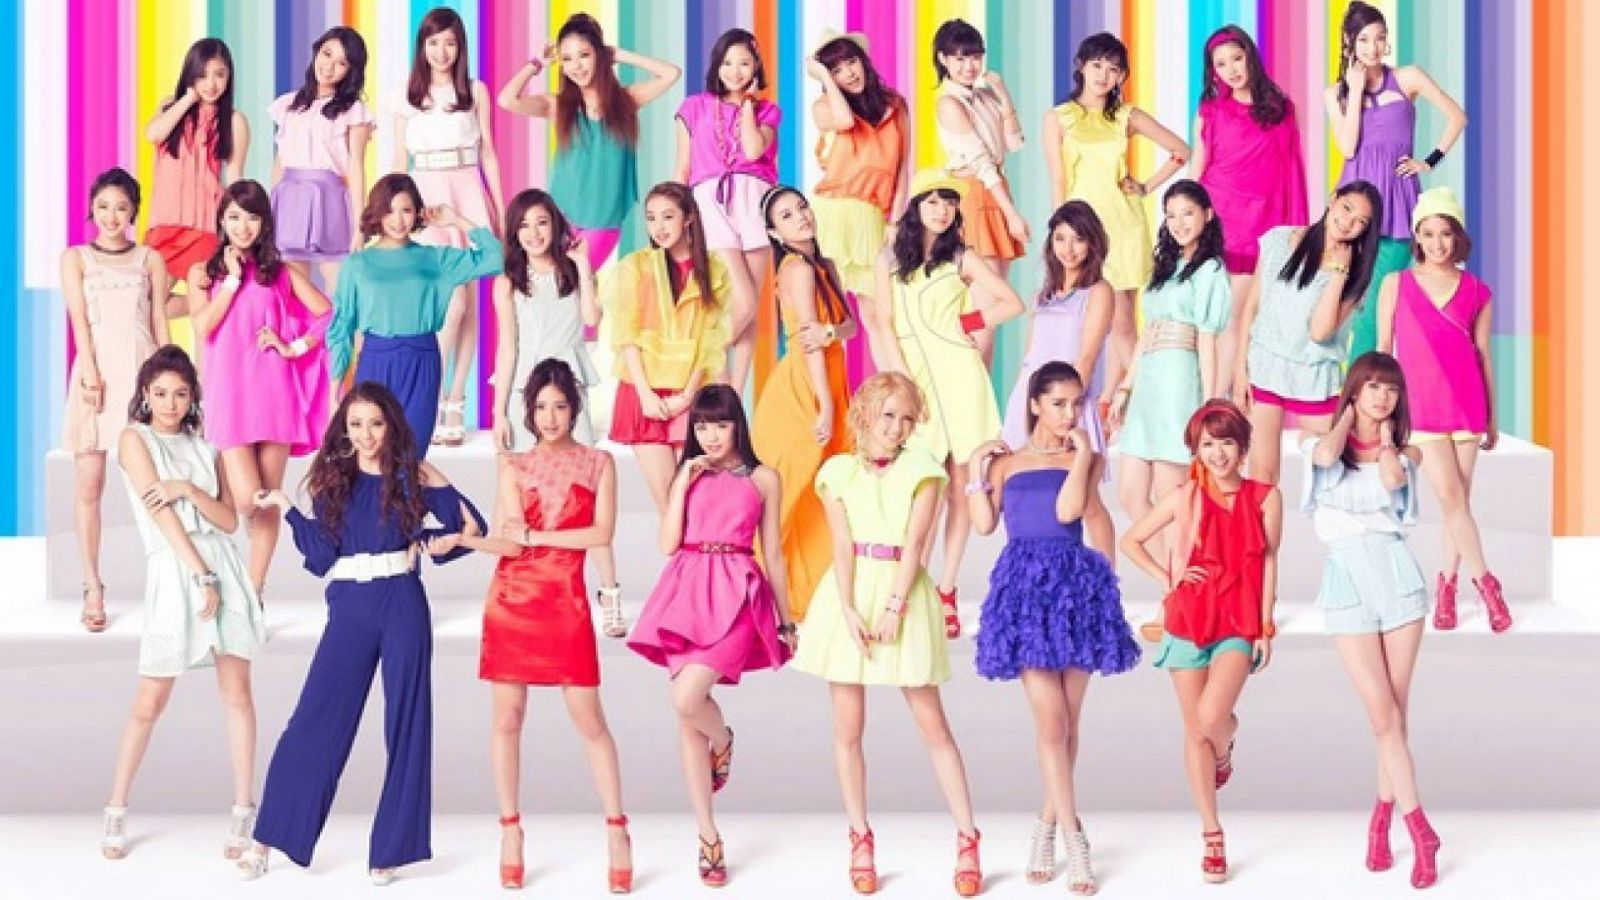 E-girls © avex marketing Inc. All rights reserved.